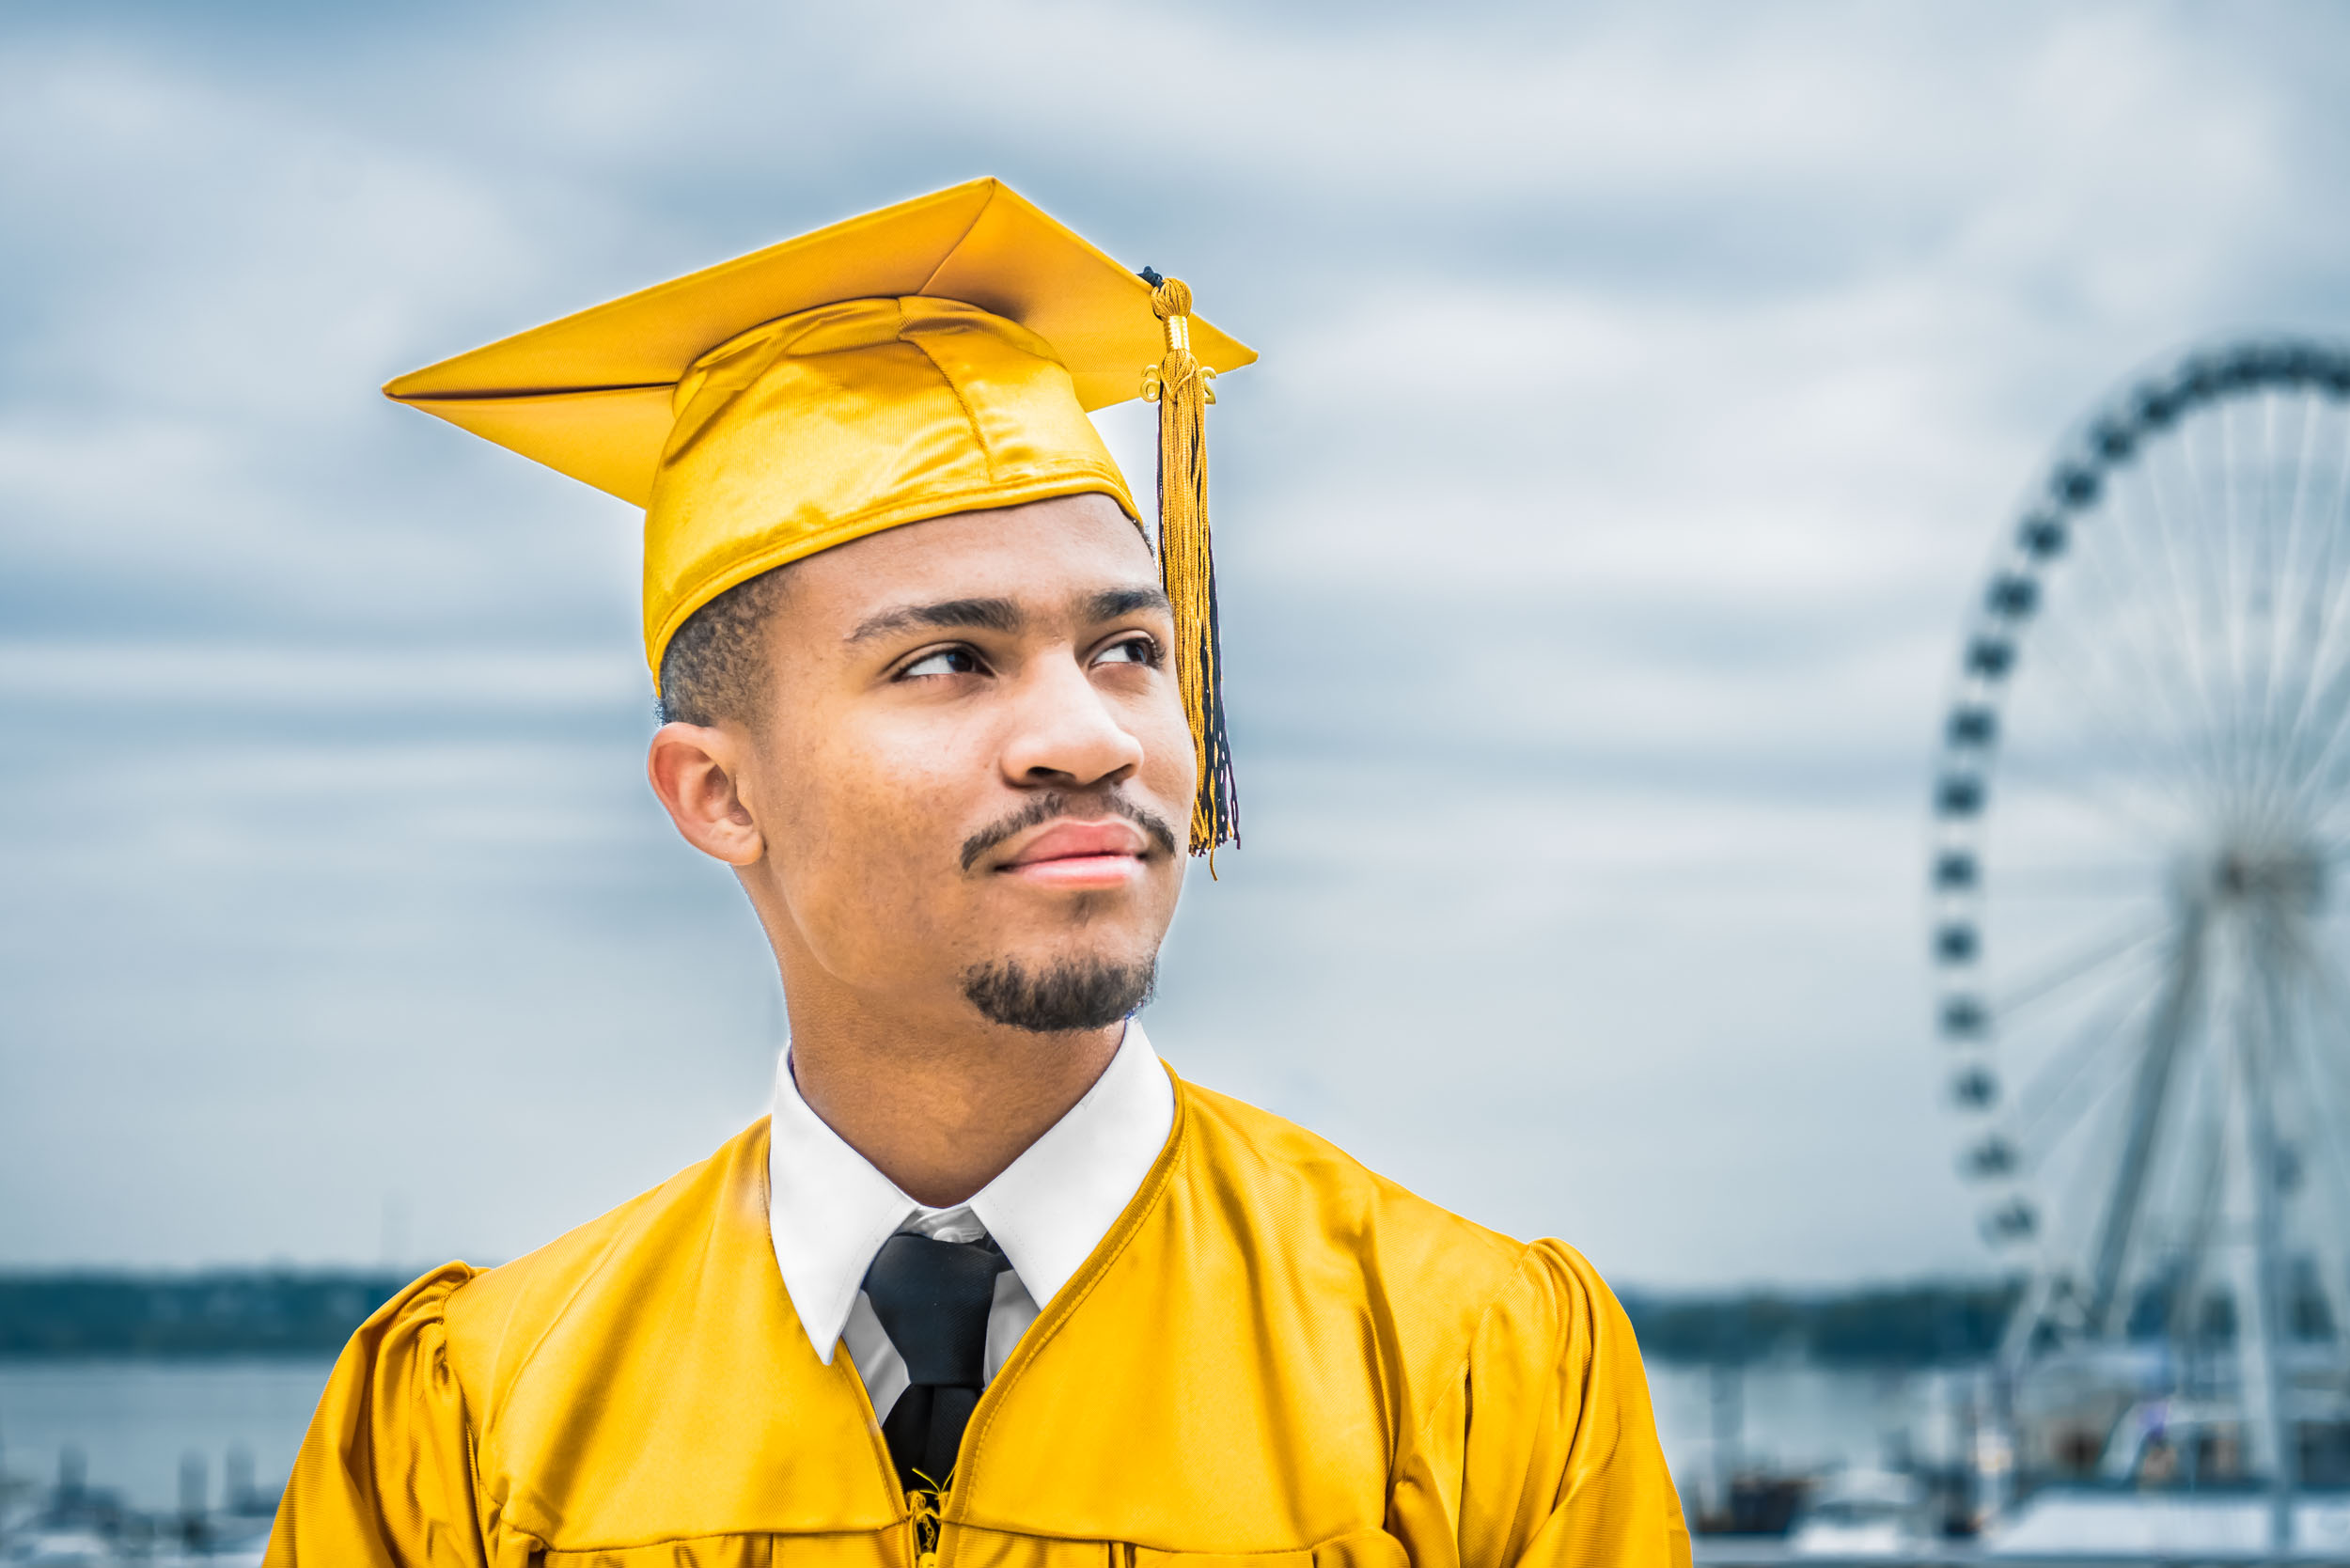 dc+metro+graduation+cap+and+gown+photography+vadym+guliuk-1.jpg